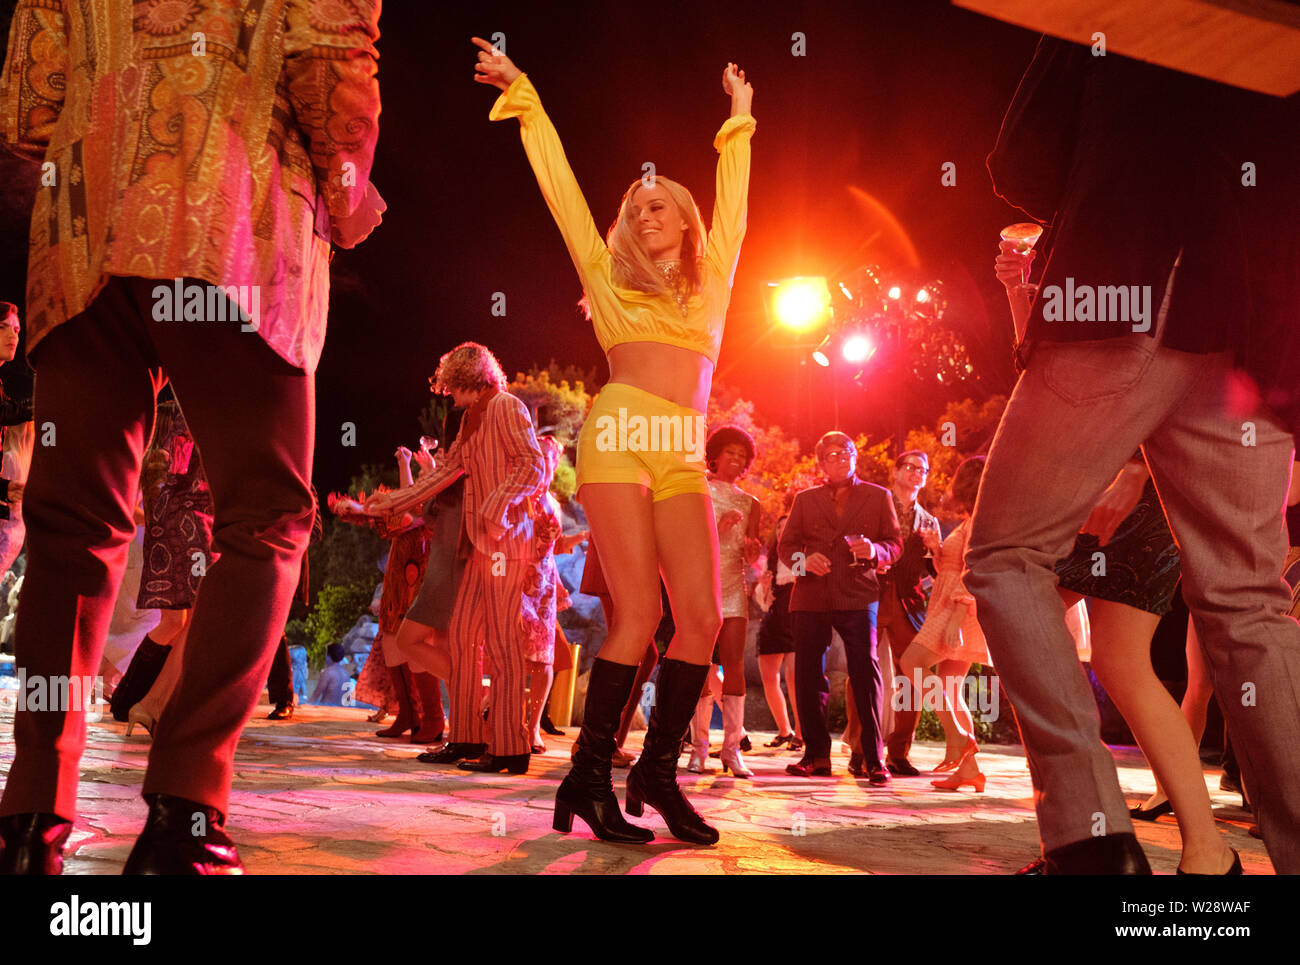 RELEASE DATE: August 9, 2019 TITLE: Once Upon a Time in Hollywood STUDIO: Columbia Pictures DIRECTOR: Quentin Tarantino PLOT: A TV actor and his stunt double embark on an odyssey to make a name for themselves in the film industry during the Charles Manson murders in 1969 Los Angeles. STARRING: MARGOT ROBBIE as Sharon Tate. (Credit Image: © Columbia Pictures/Entertainment Pictures) - Stock Image